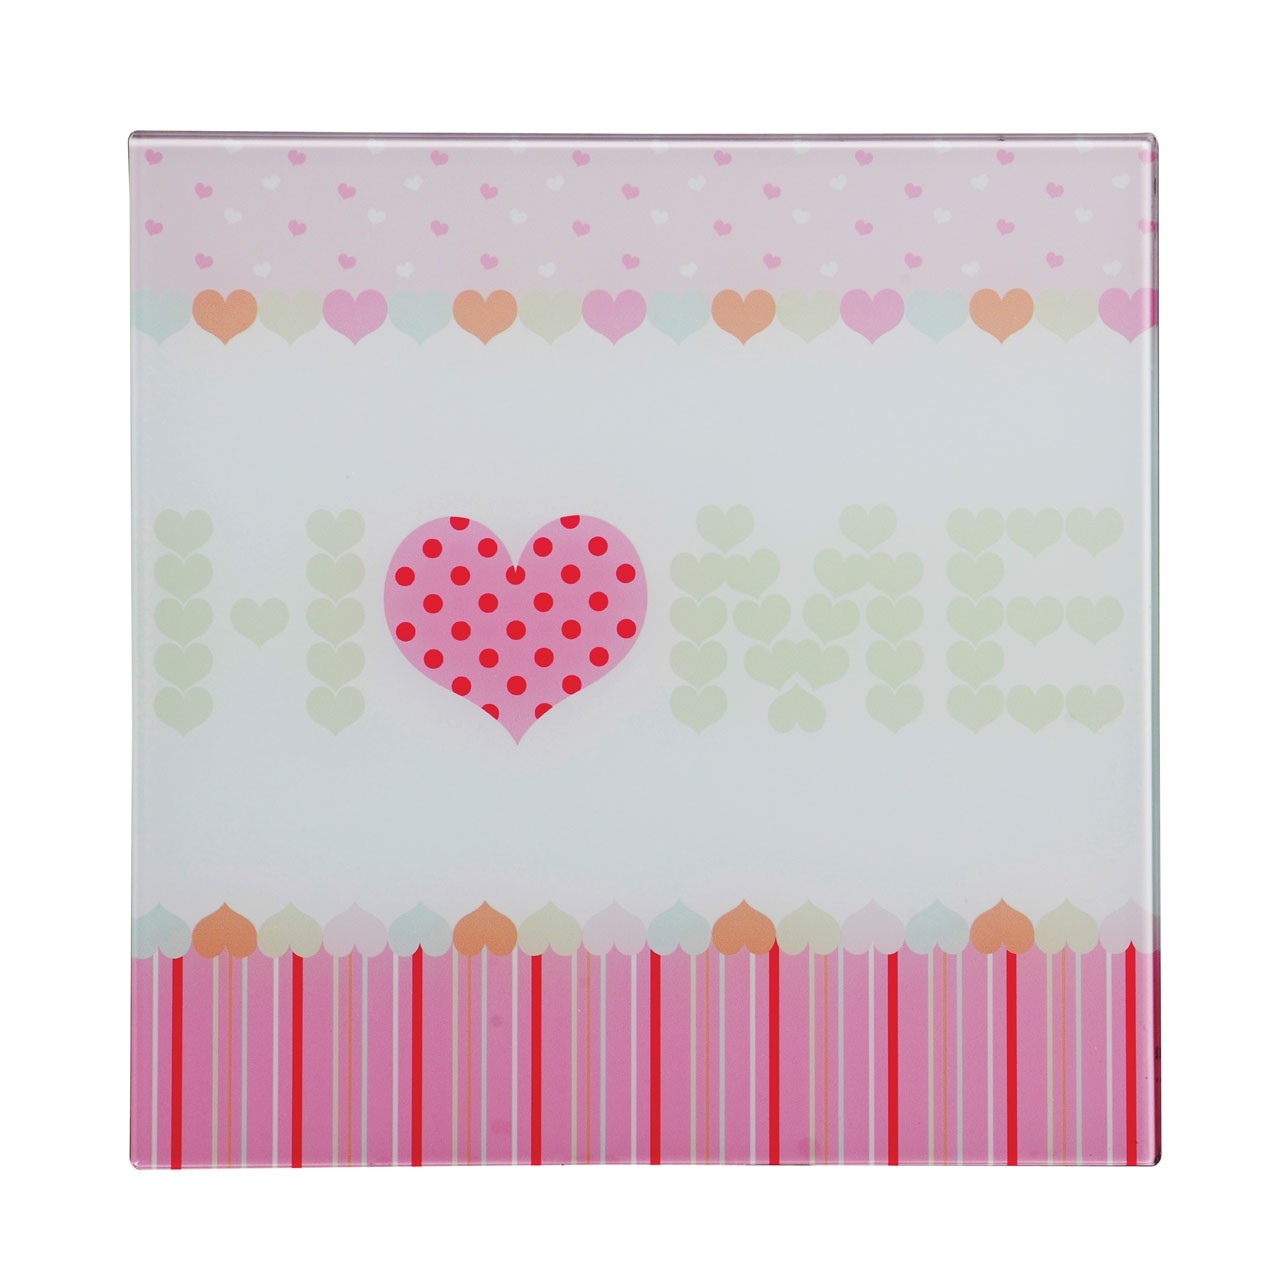 Premier Housewares Home Sweet Home-1 Glass Print - 30 x 30 cm